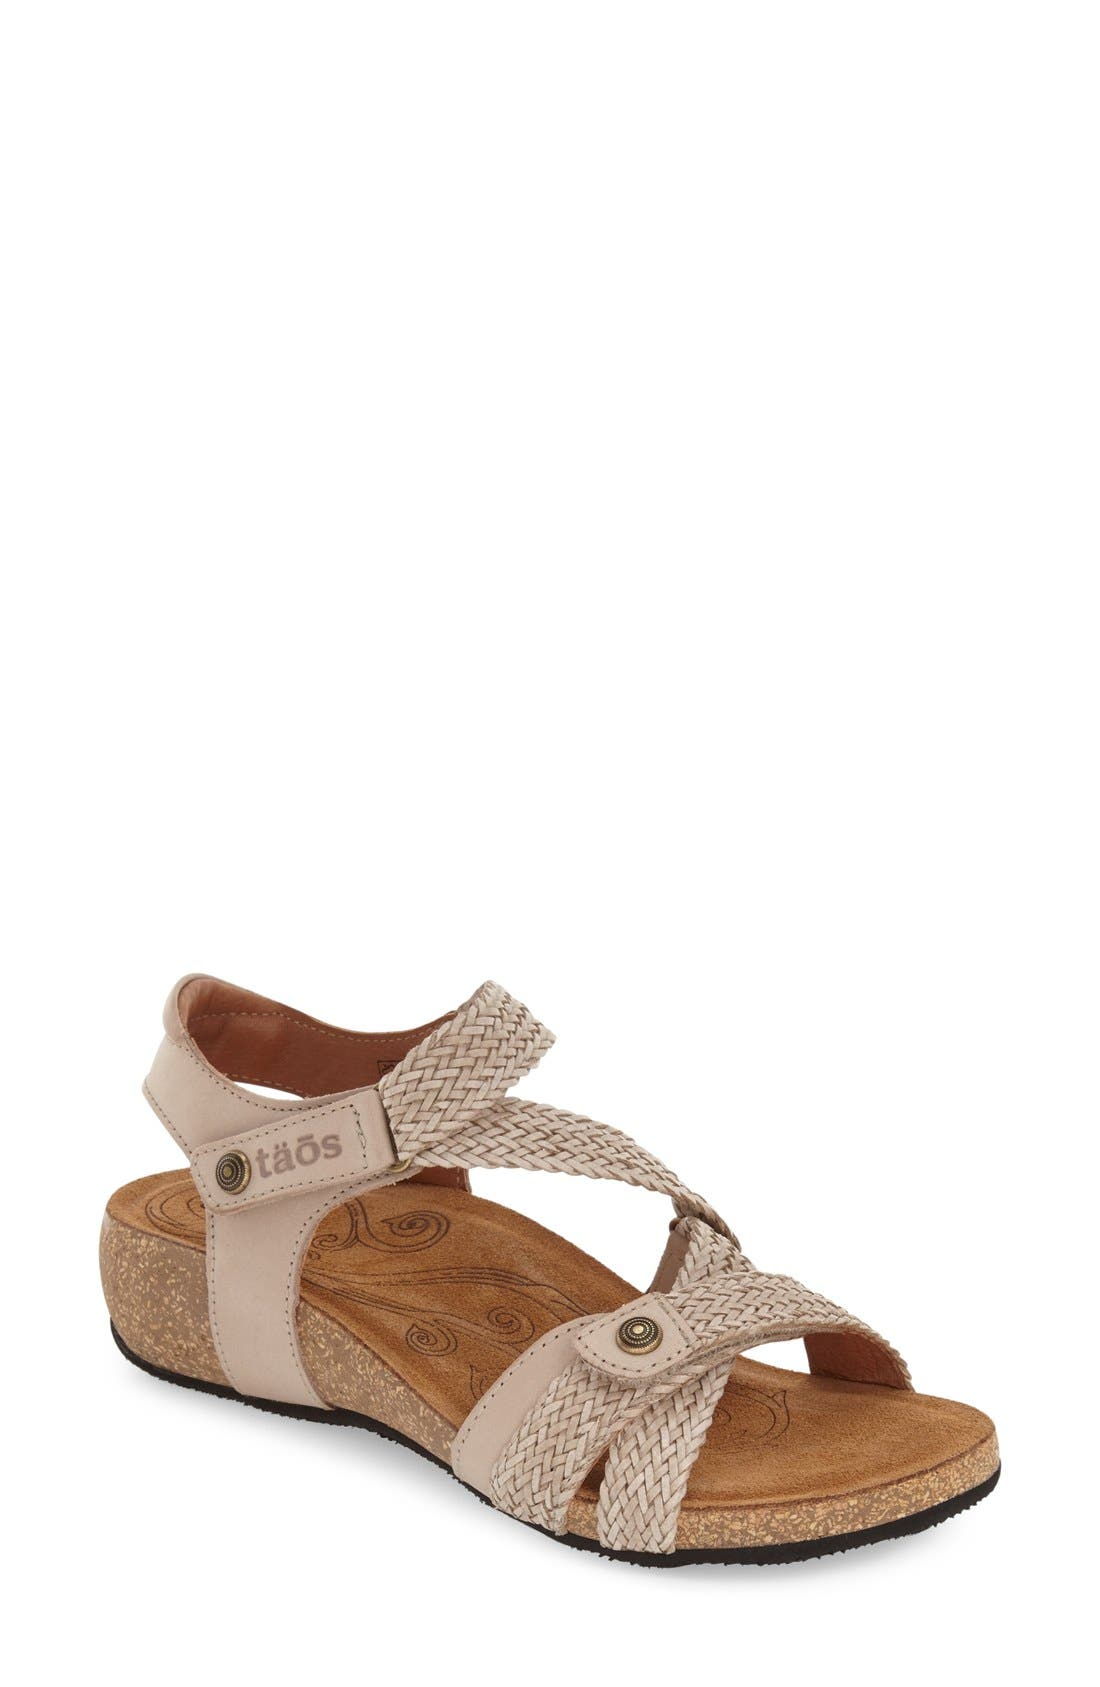 'Trulie' Wedge Sandal,                             Main thumbnail 1, color,                             Stone Leather